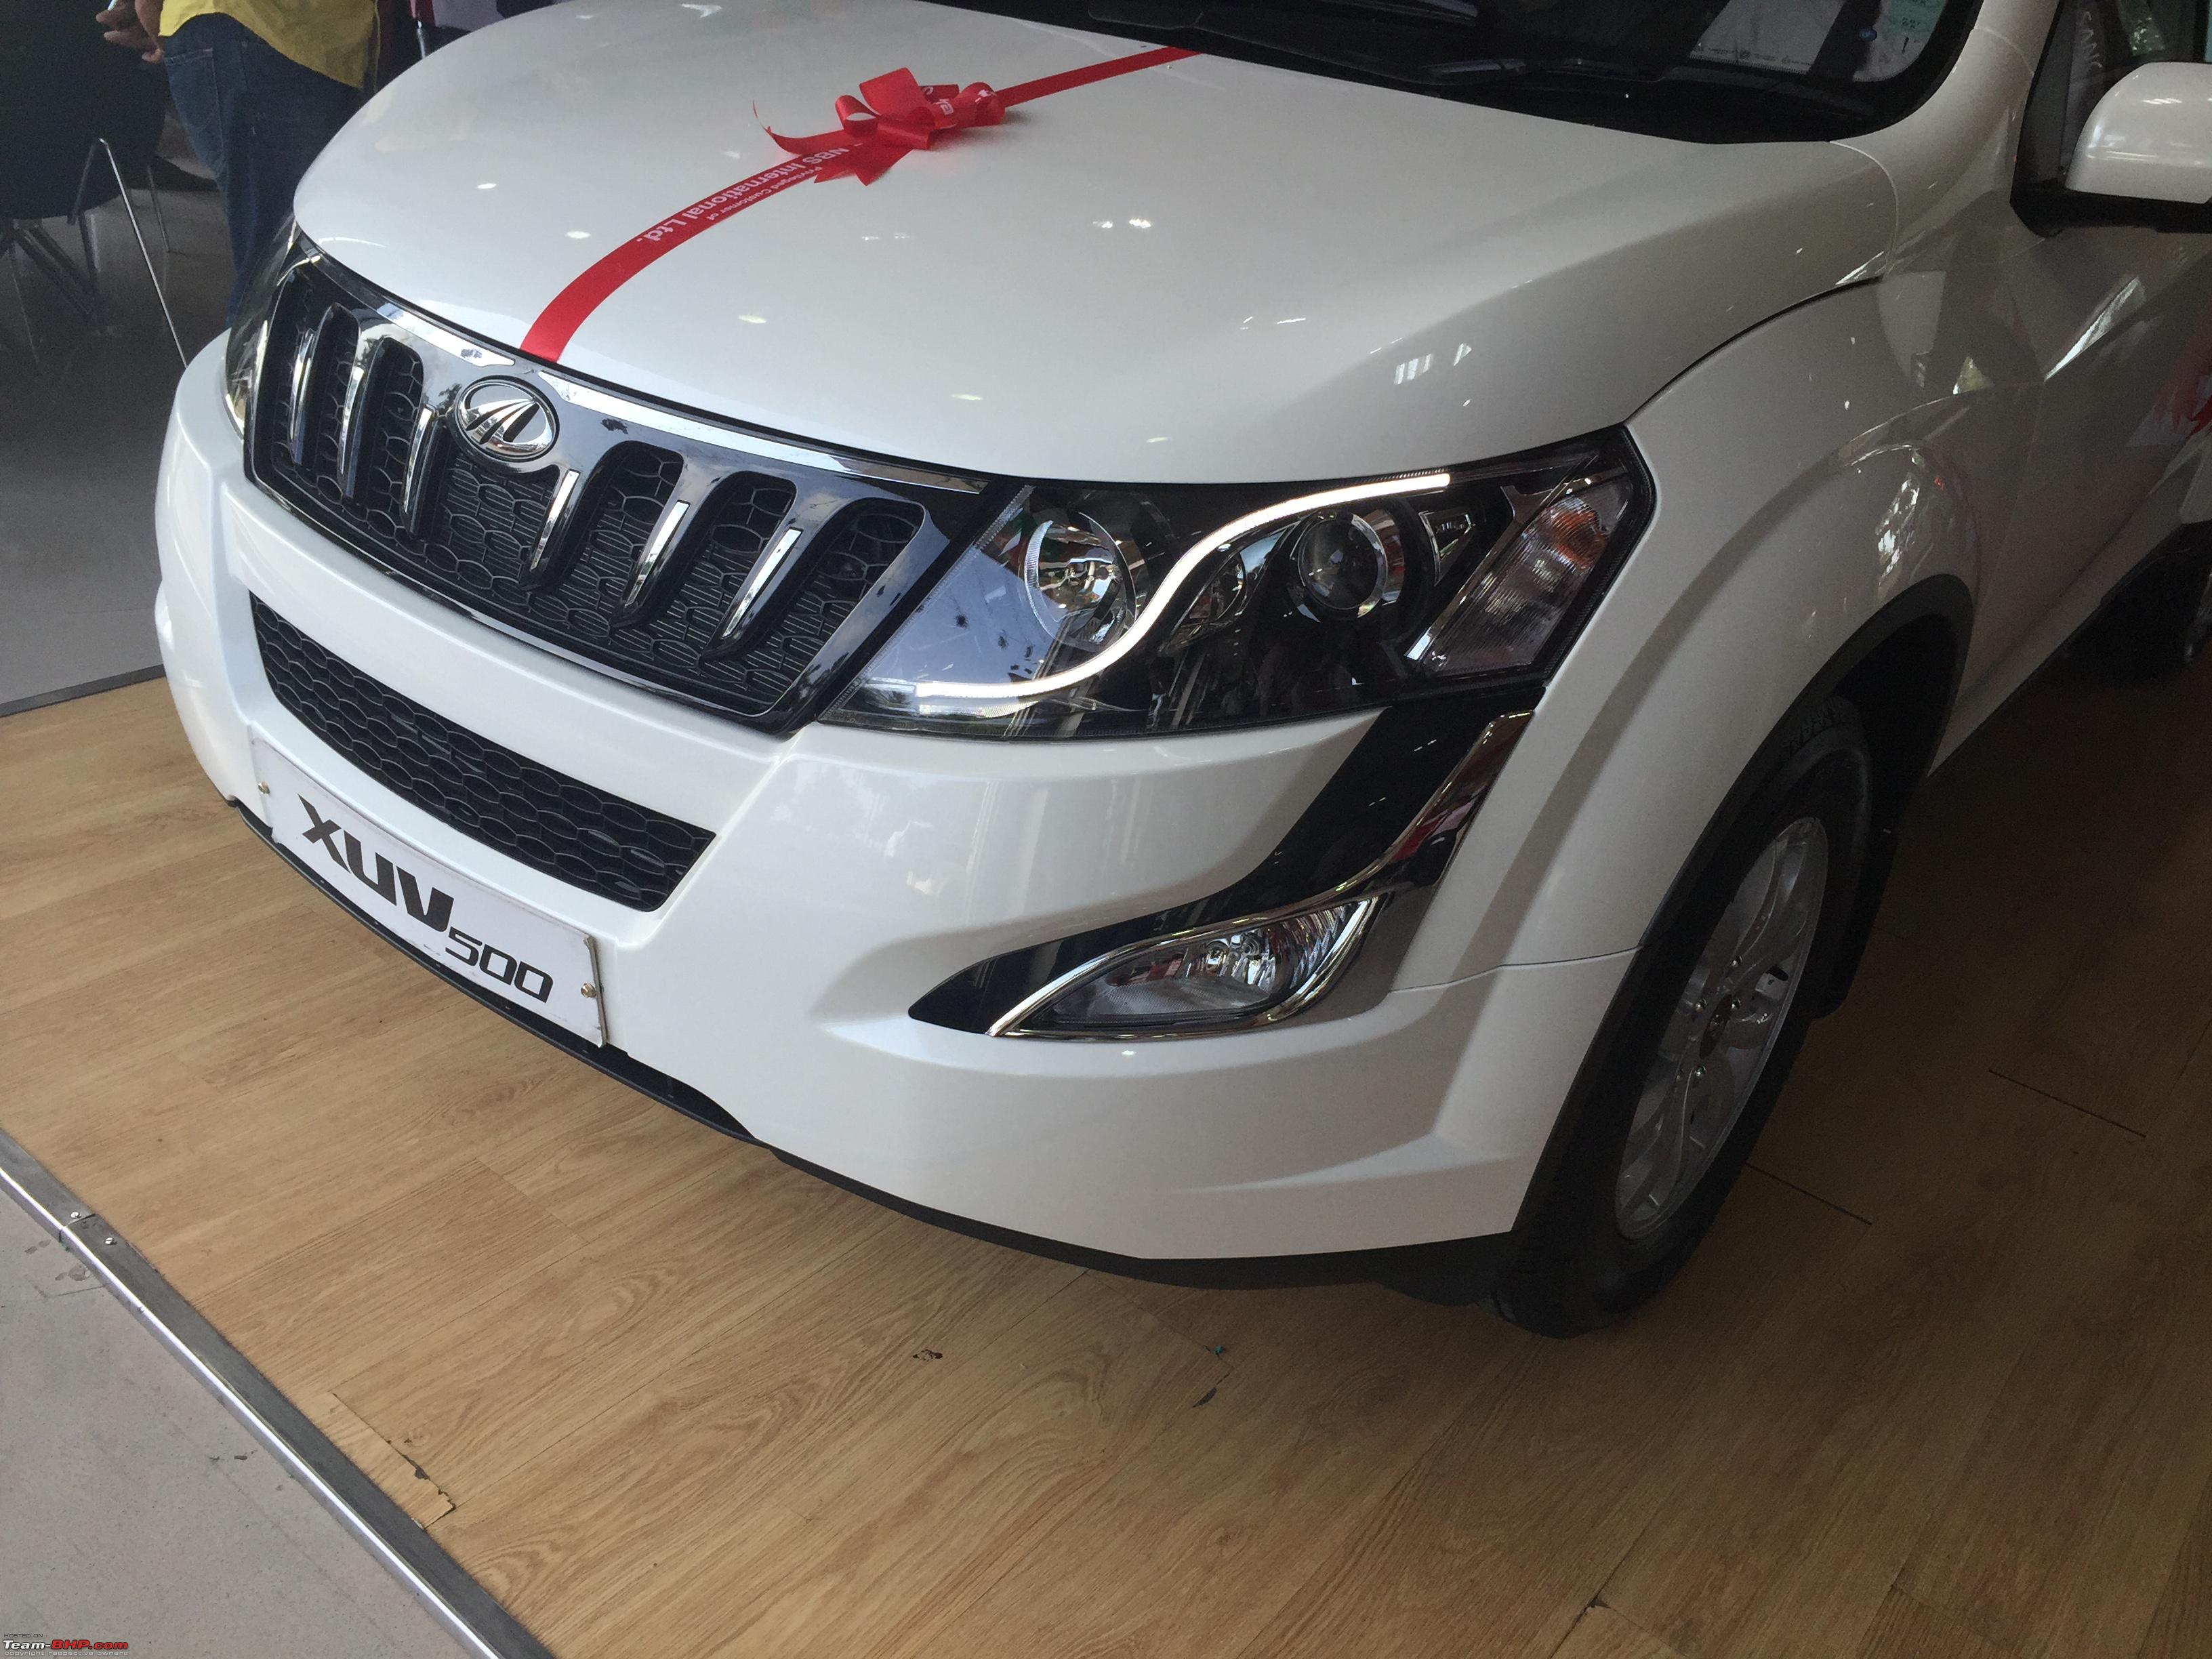 Mahindra xuv 500 images in red colour dress